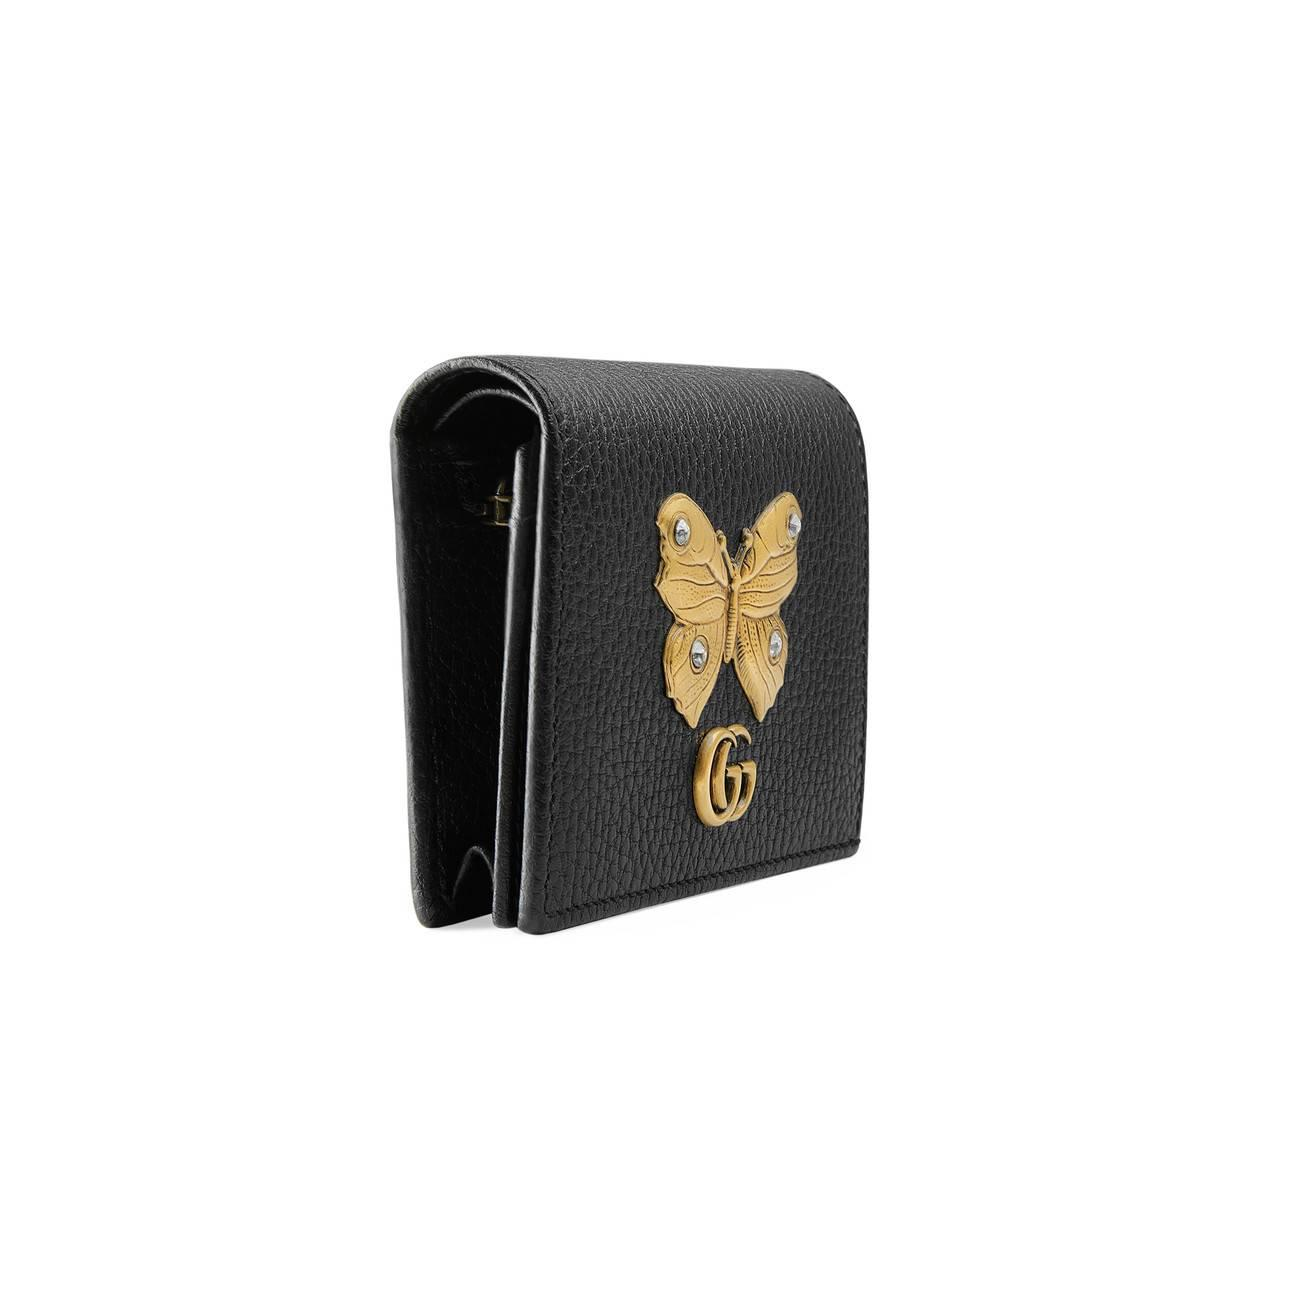 Gucci - Black Leather Card Case With Butterfly - Lyst. View fullscreen 03fd399c8d5